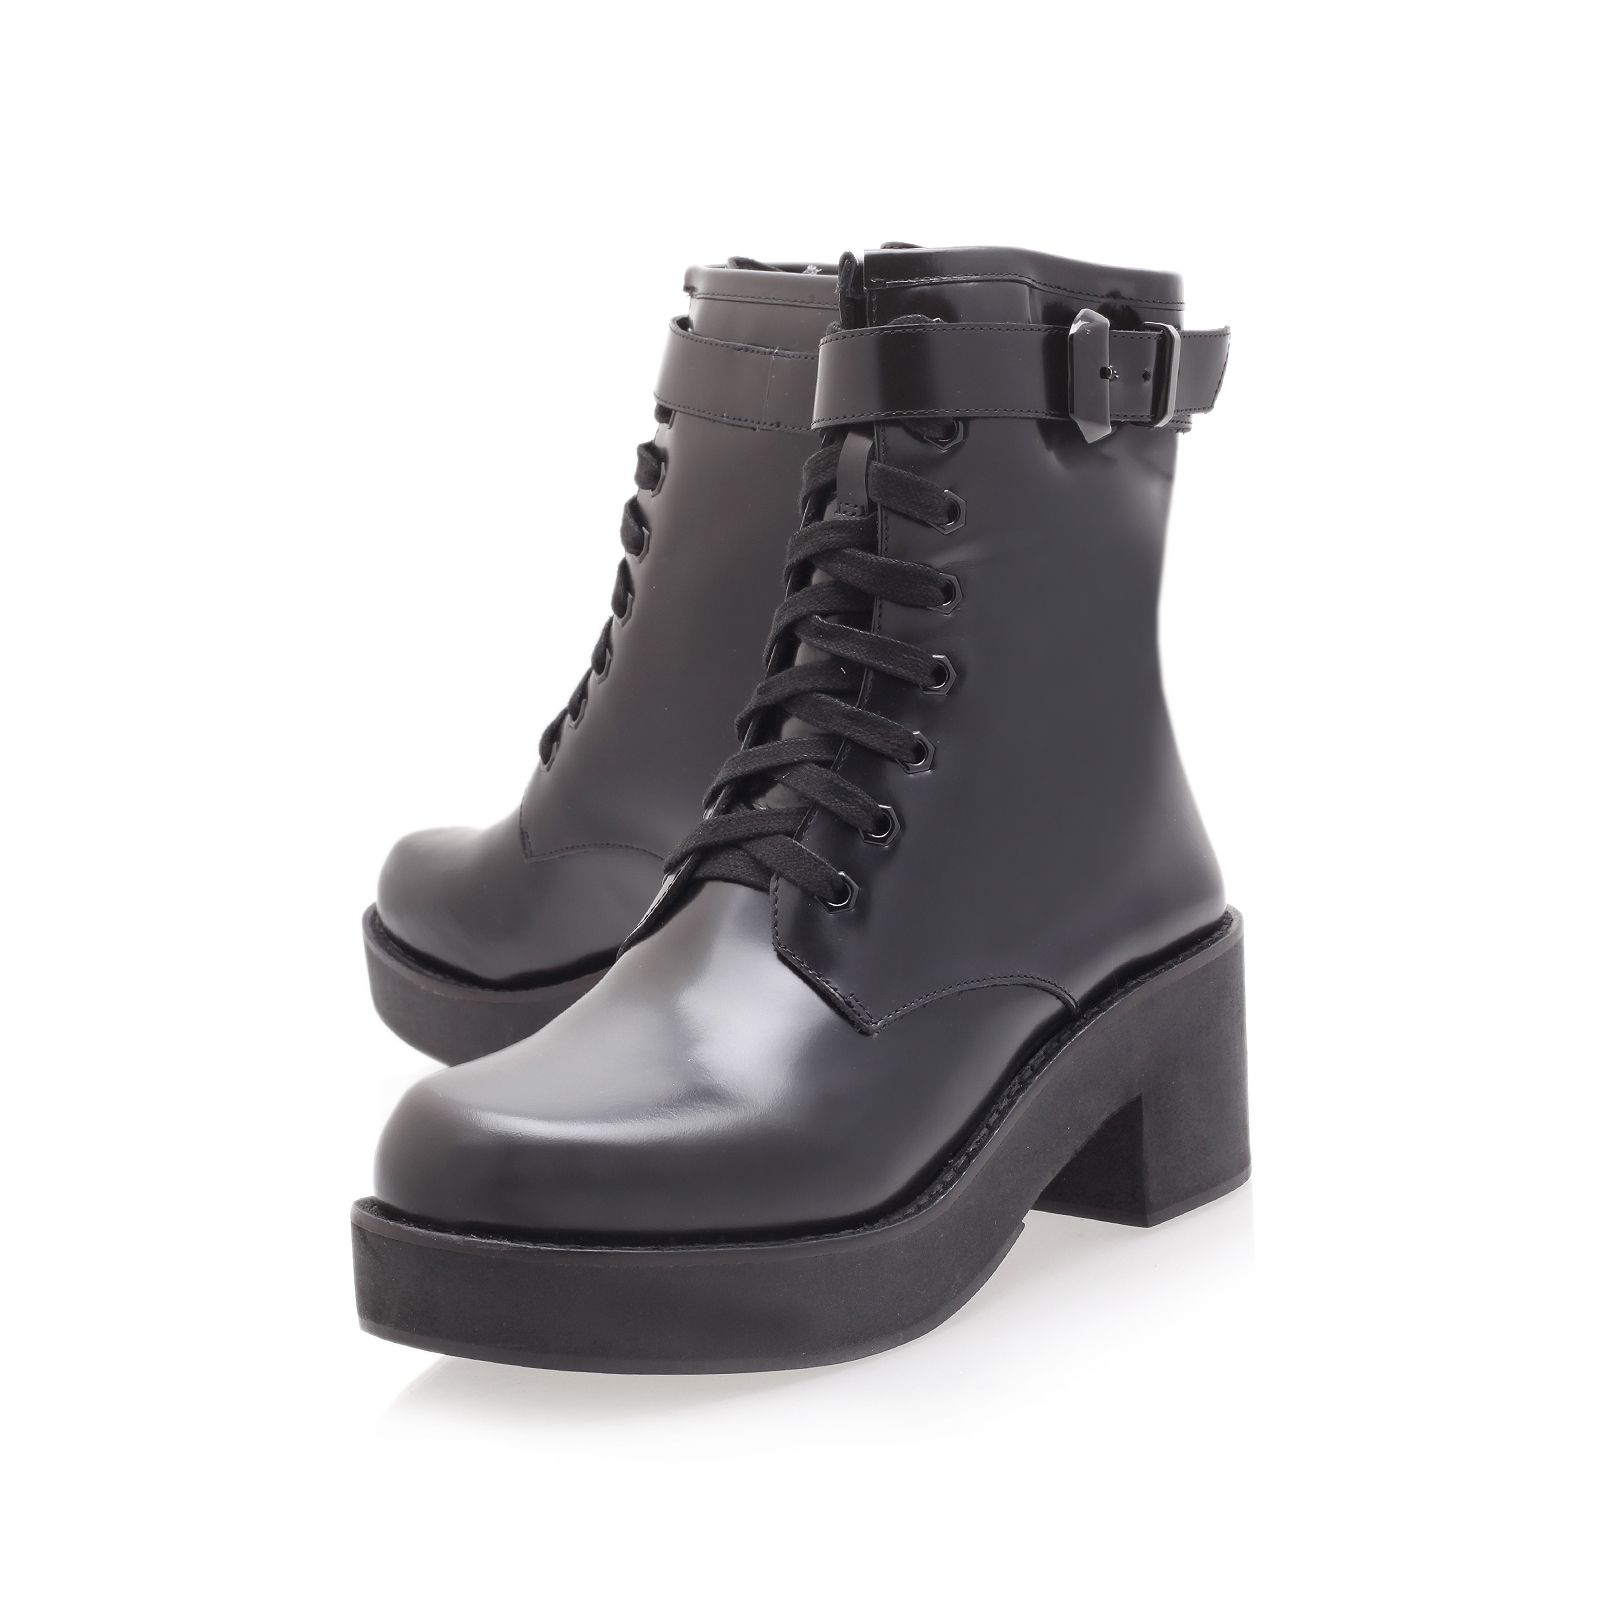 Utopia lace-up boots